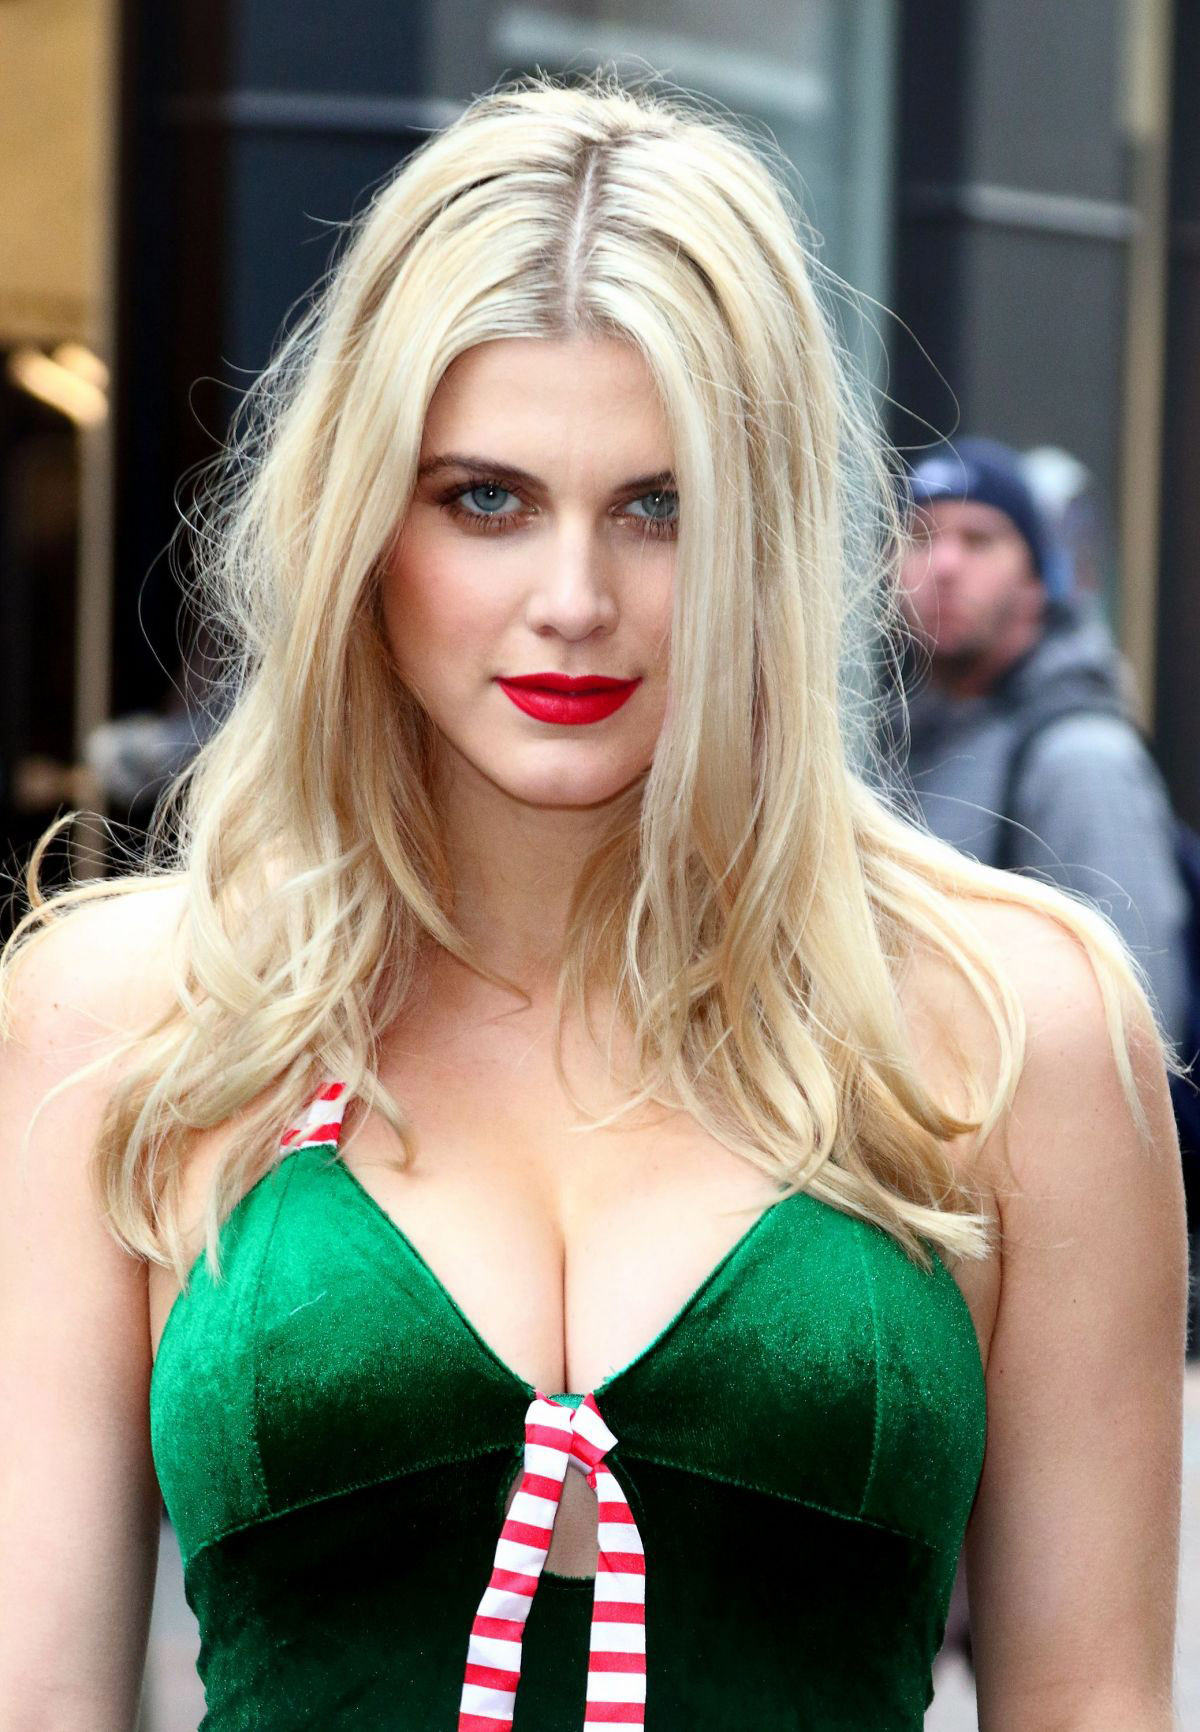 ashley-james-peta-anti-fur-campaign-in-london-28